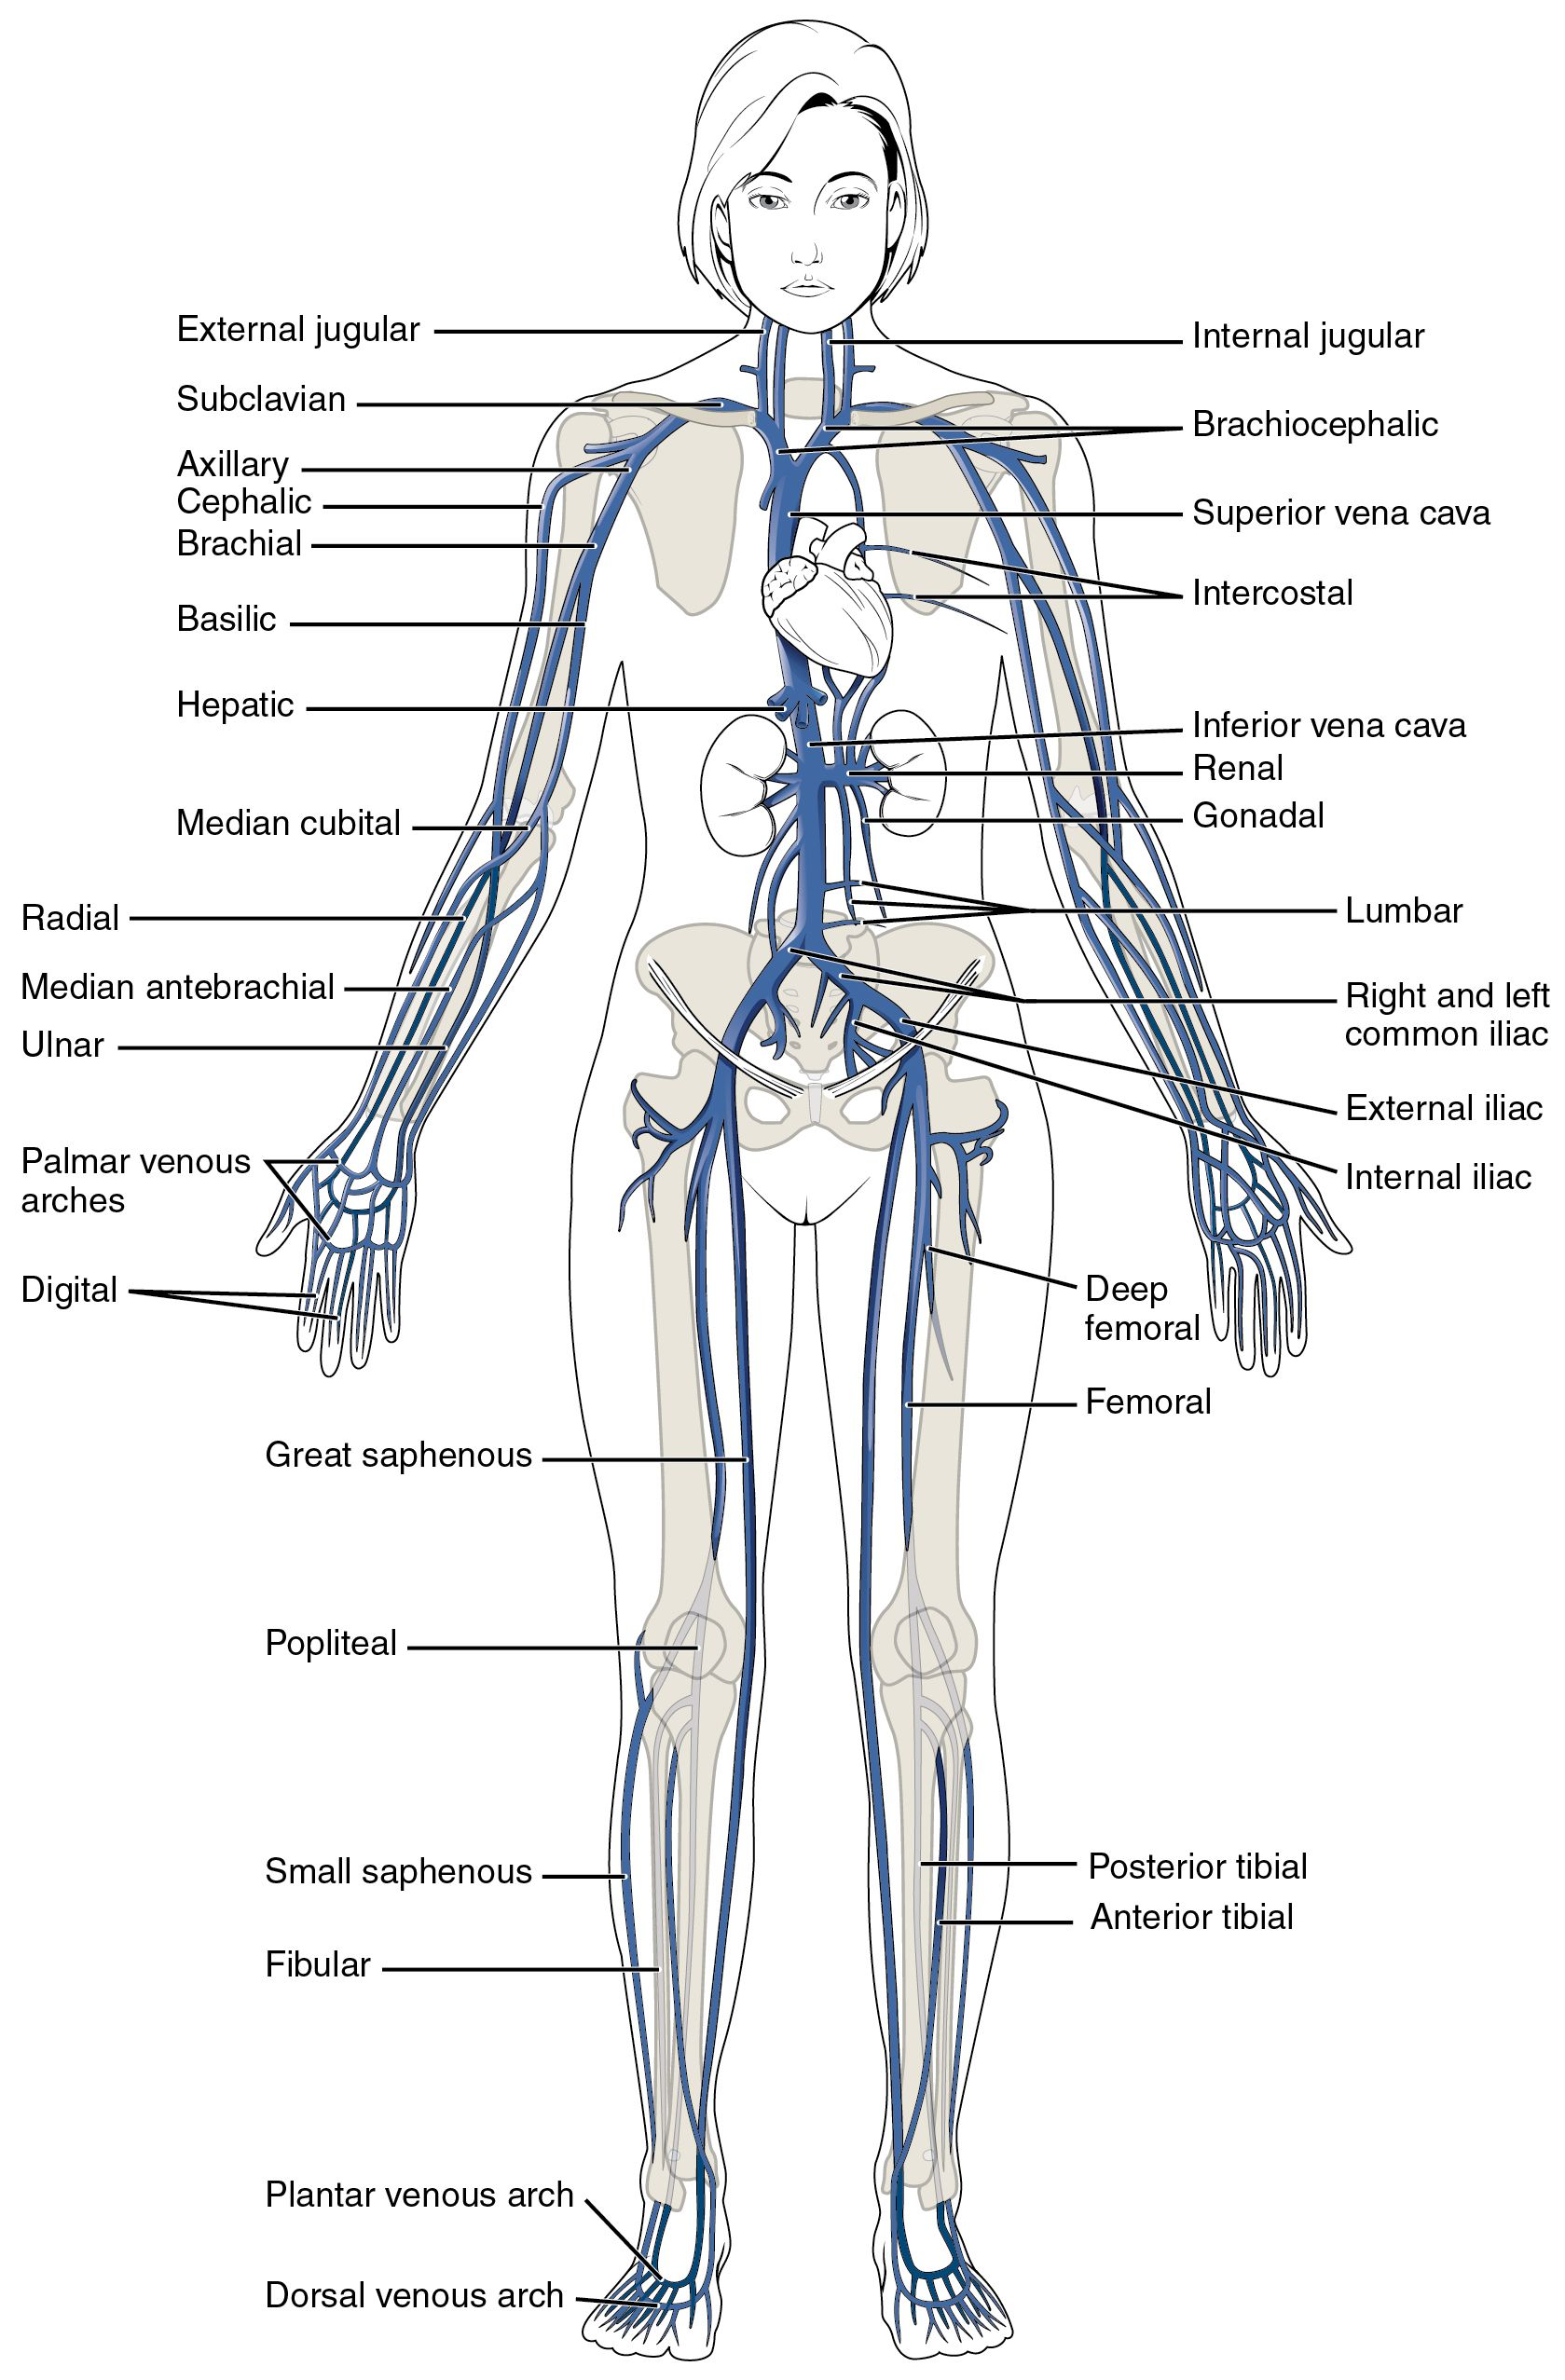 This Diagram Shows The Major Veins In The Human Body